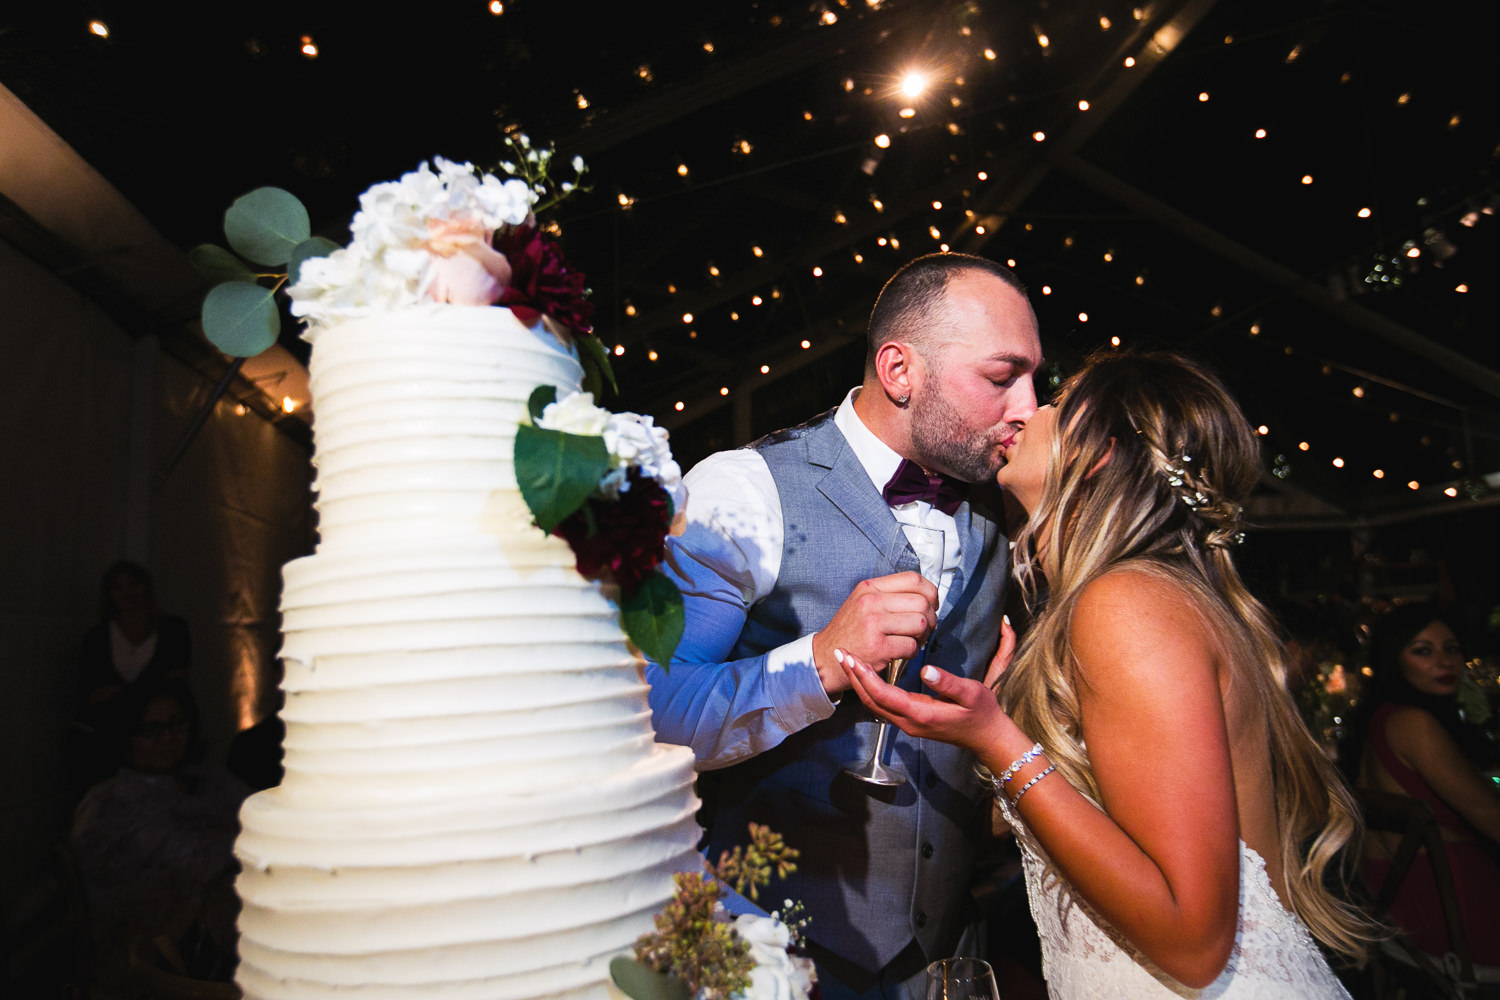 Cutting the cake in the tent in Stacy Porras planned Hummingbird Nest wedding